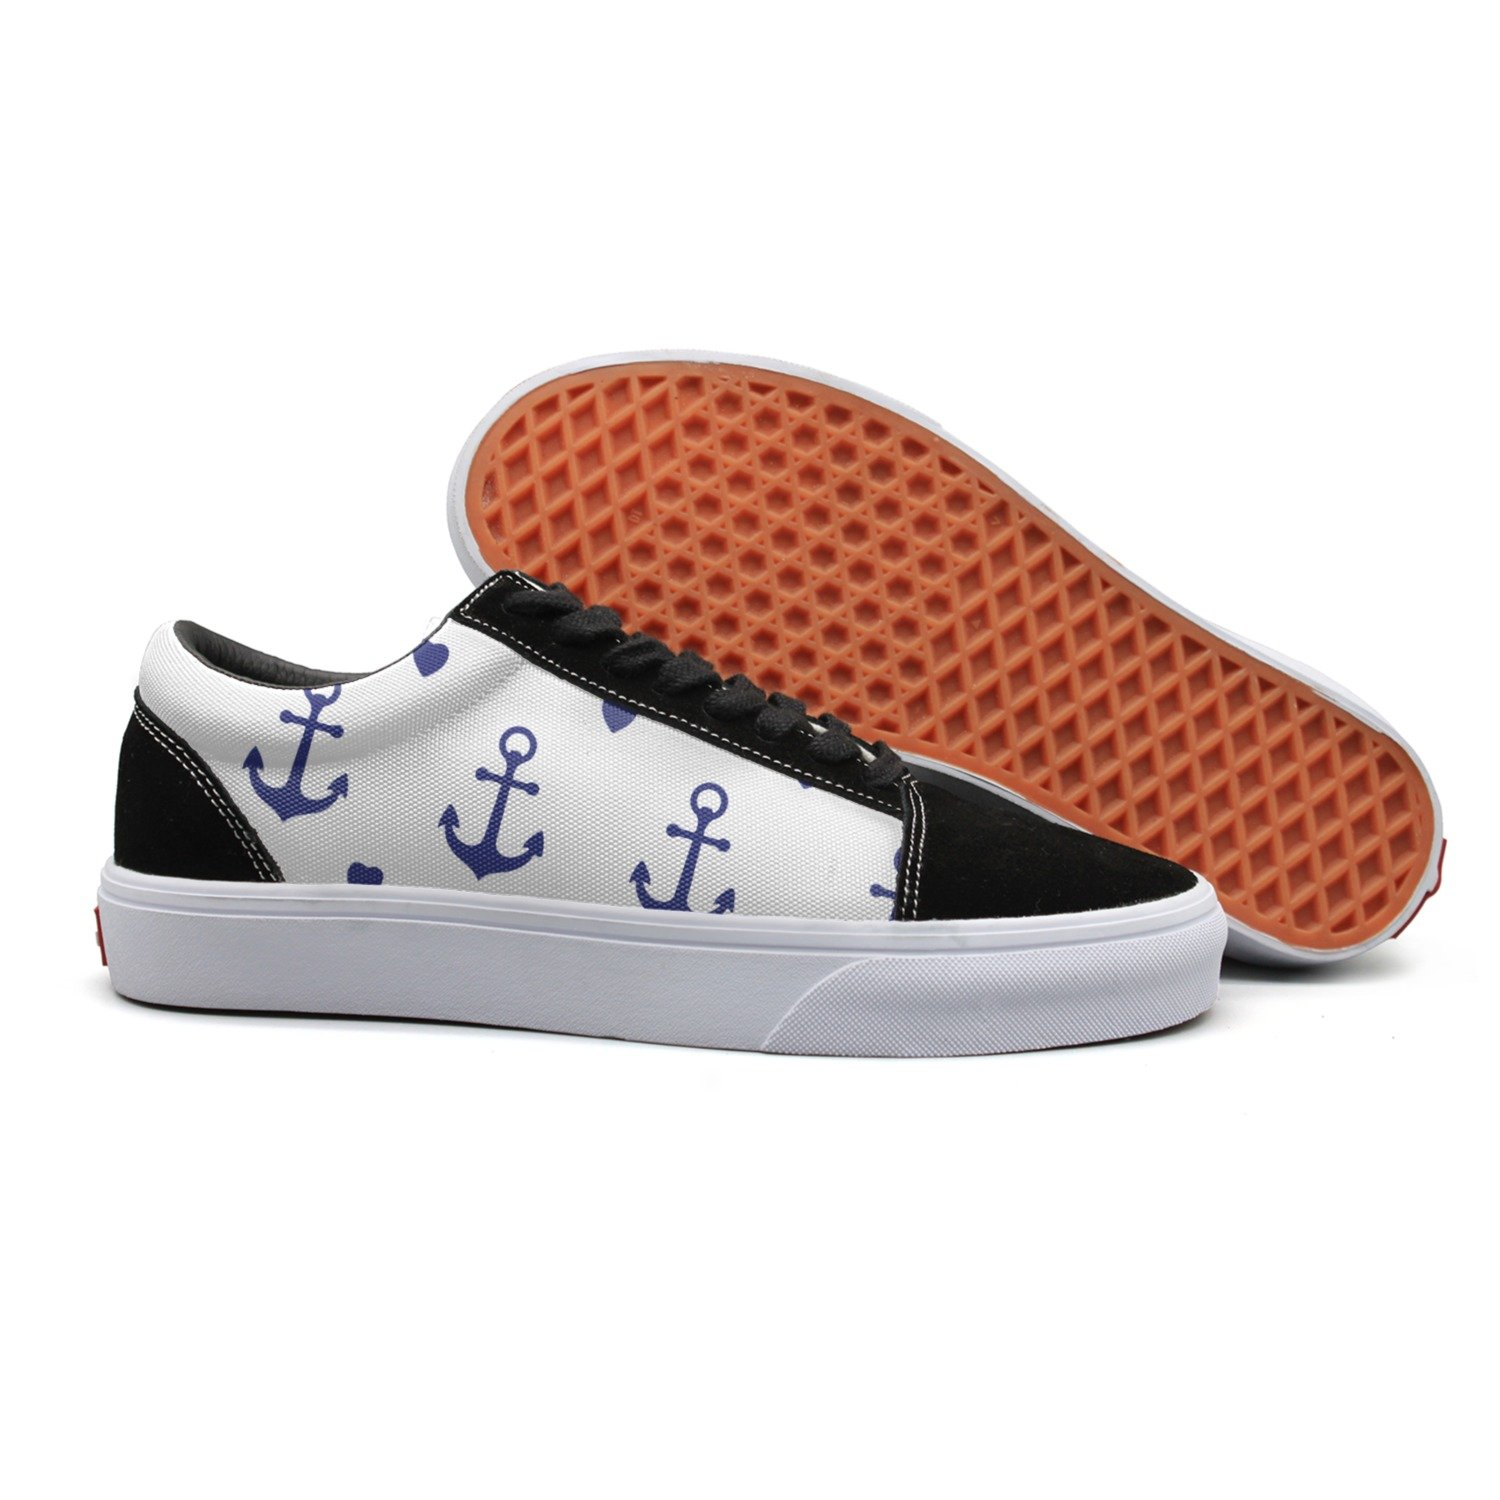 VCERTHDF Print Trendy Love Anchor Pattern Low Top Canvas Sneakers